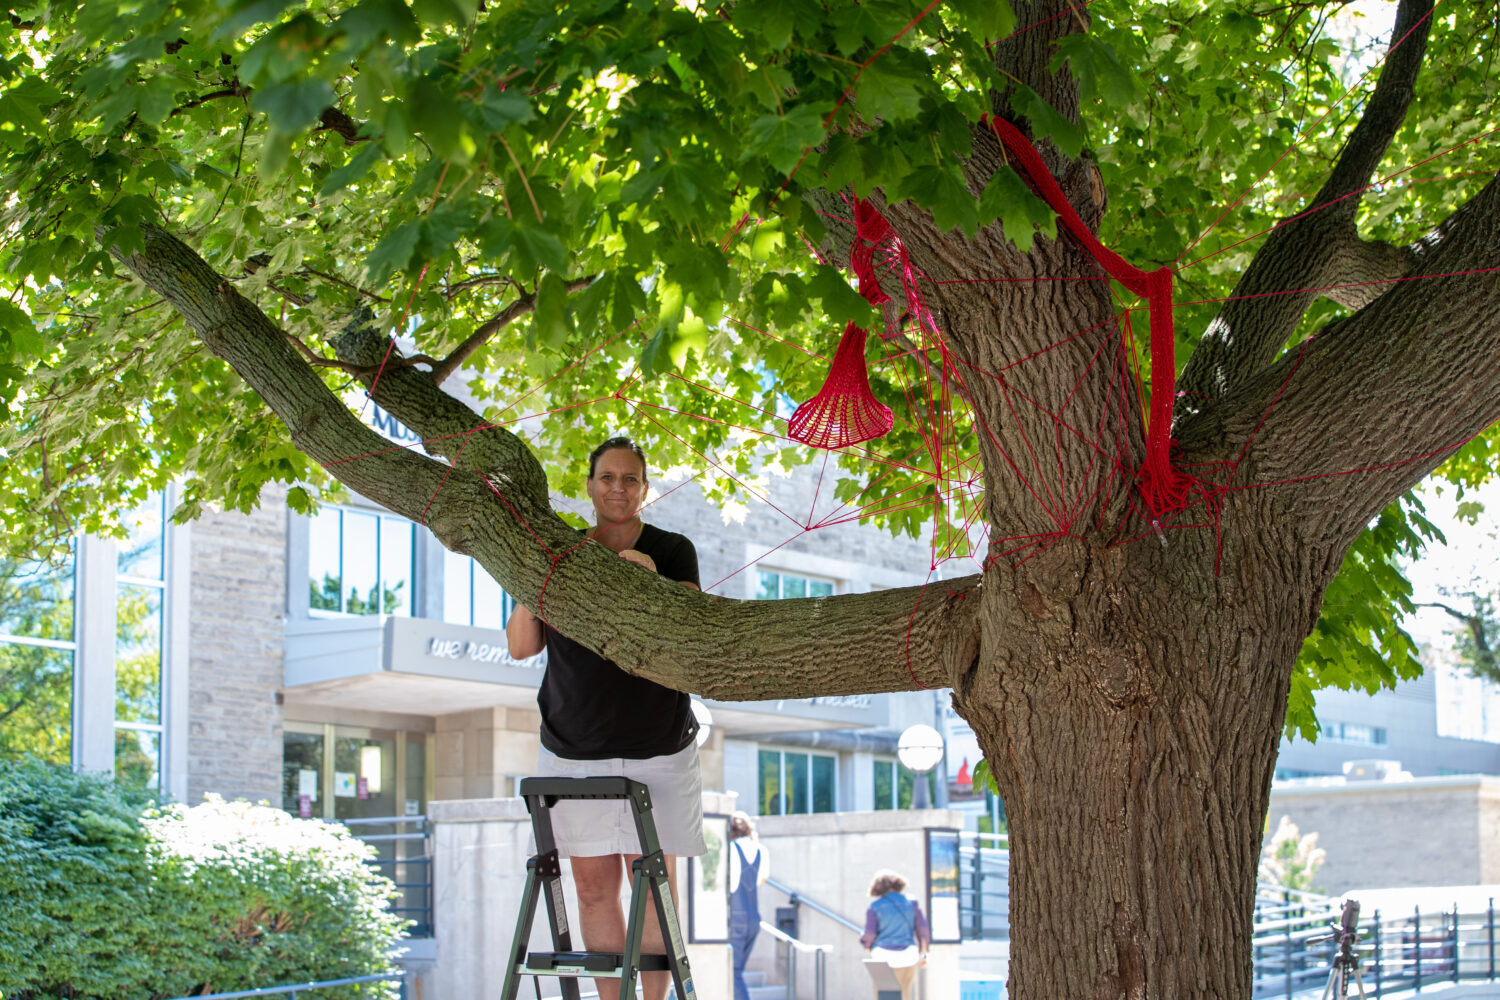 Tracey-Mae Chambers is standing on a ladder in a black t-shirt. She is shown behind a tree that is wrapped in red string part of the installation.